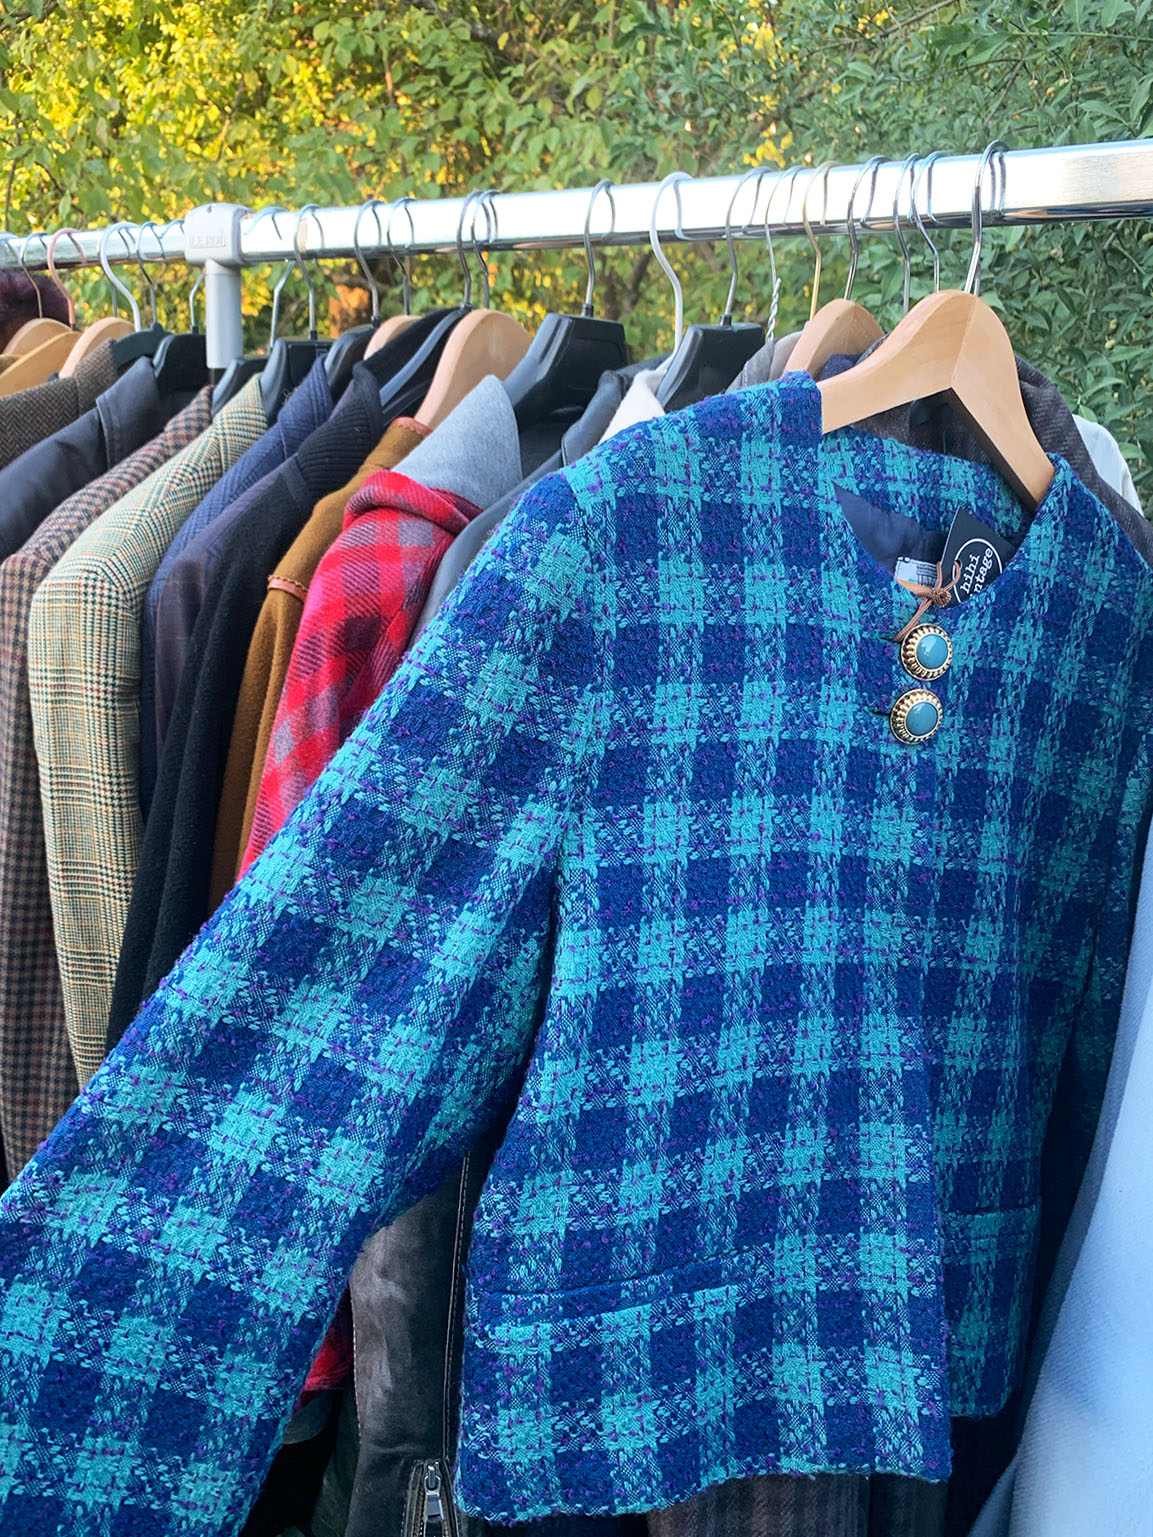 In Florence you can find amazing vintage clothes and accessories